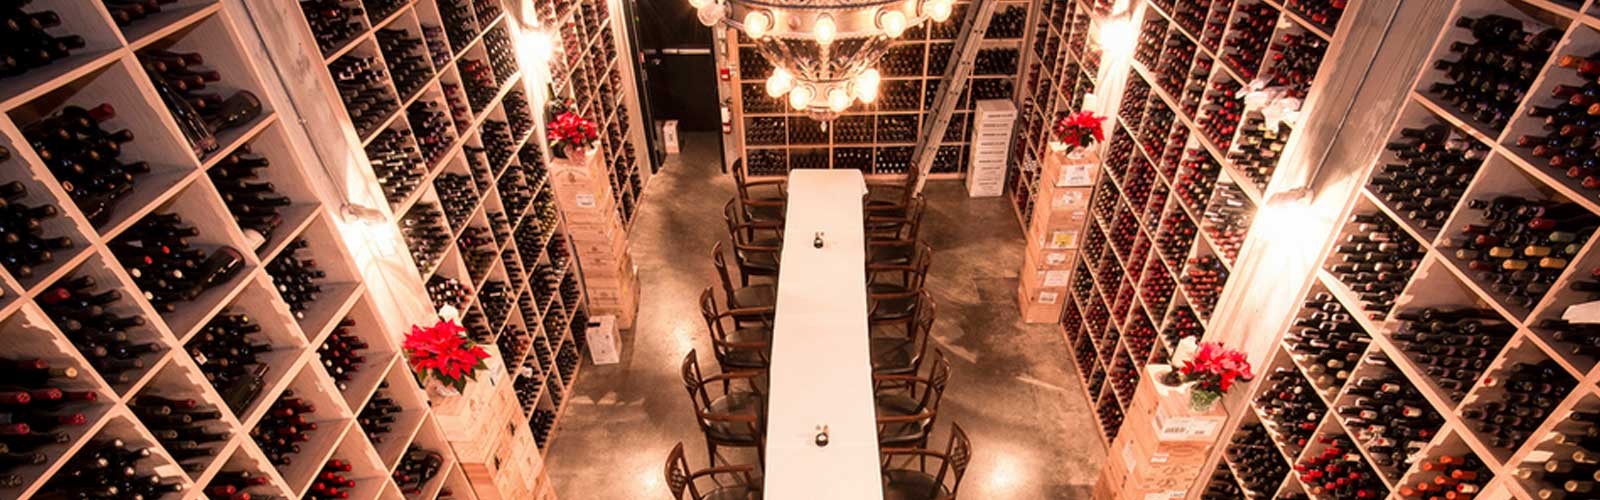 Home Winecellar En